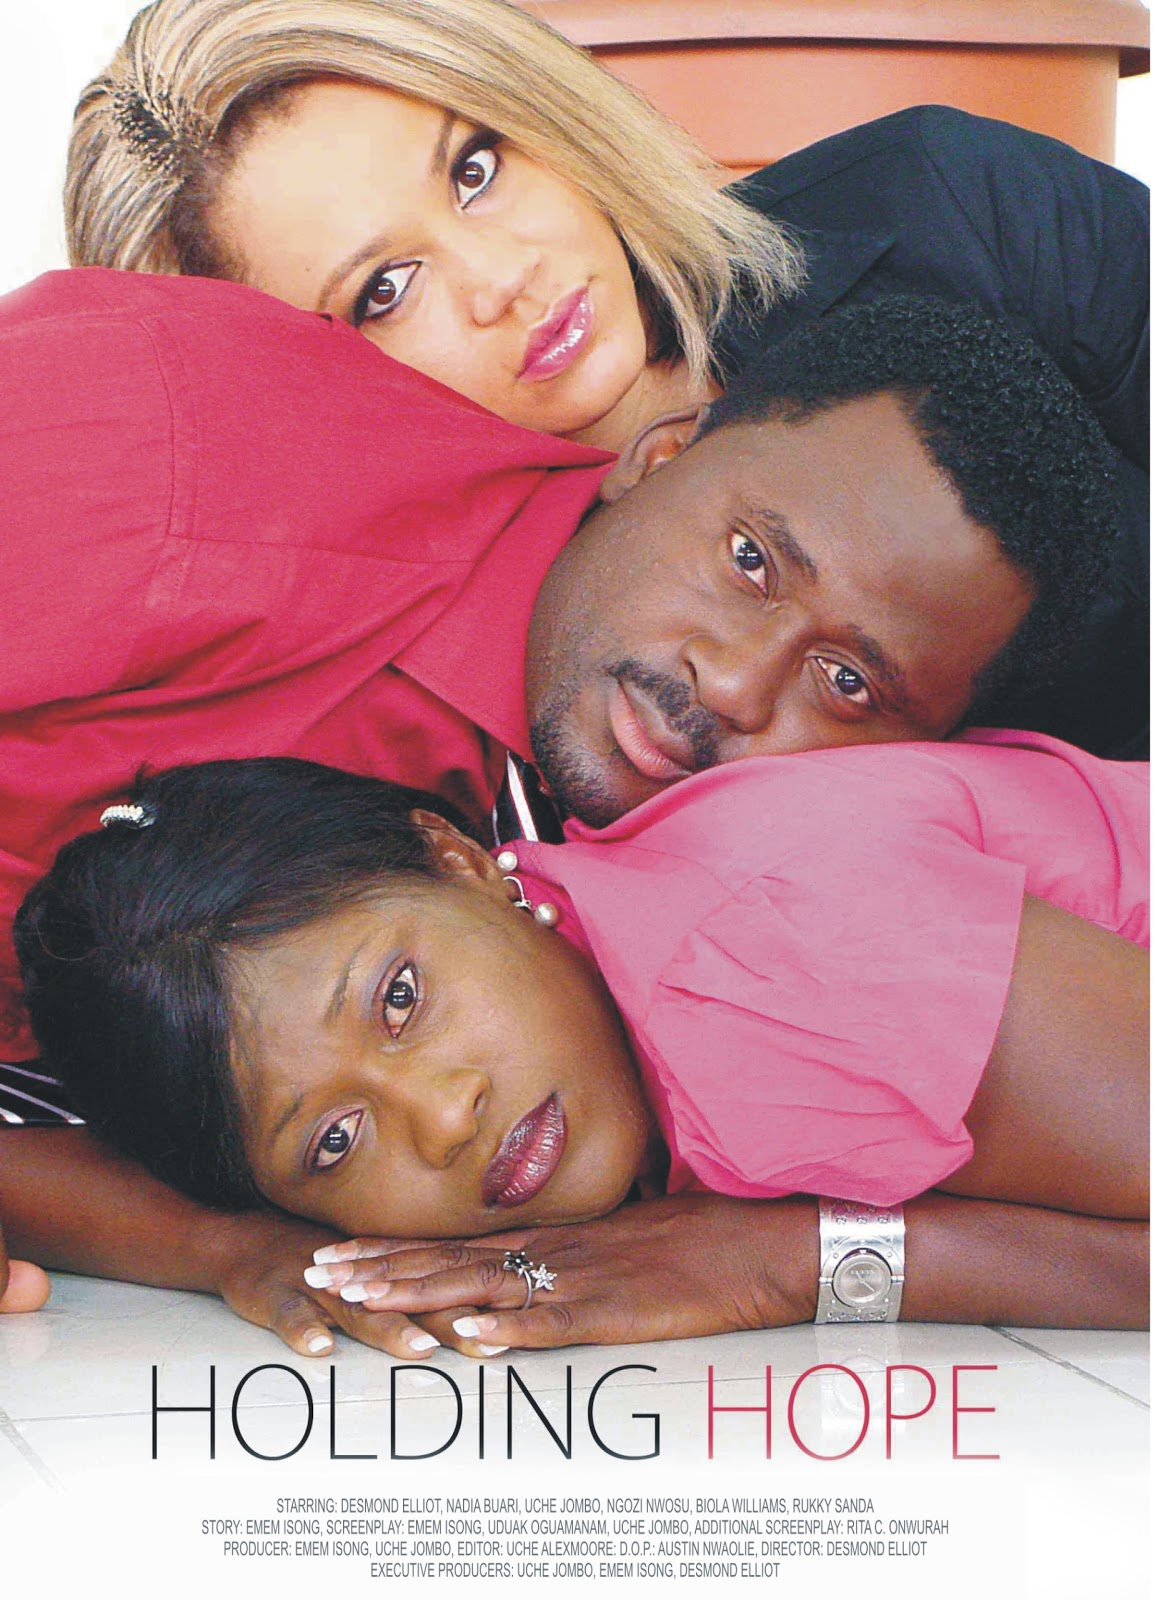 Holding Hope Nigerian Movie Part 2 - Desmond Elliot, Uche Jombo, Nadia Buari